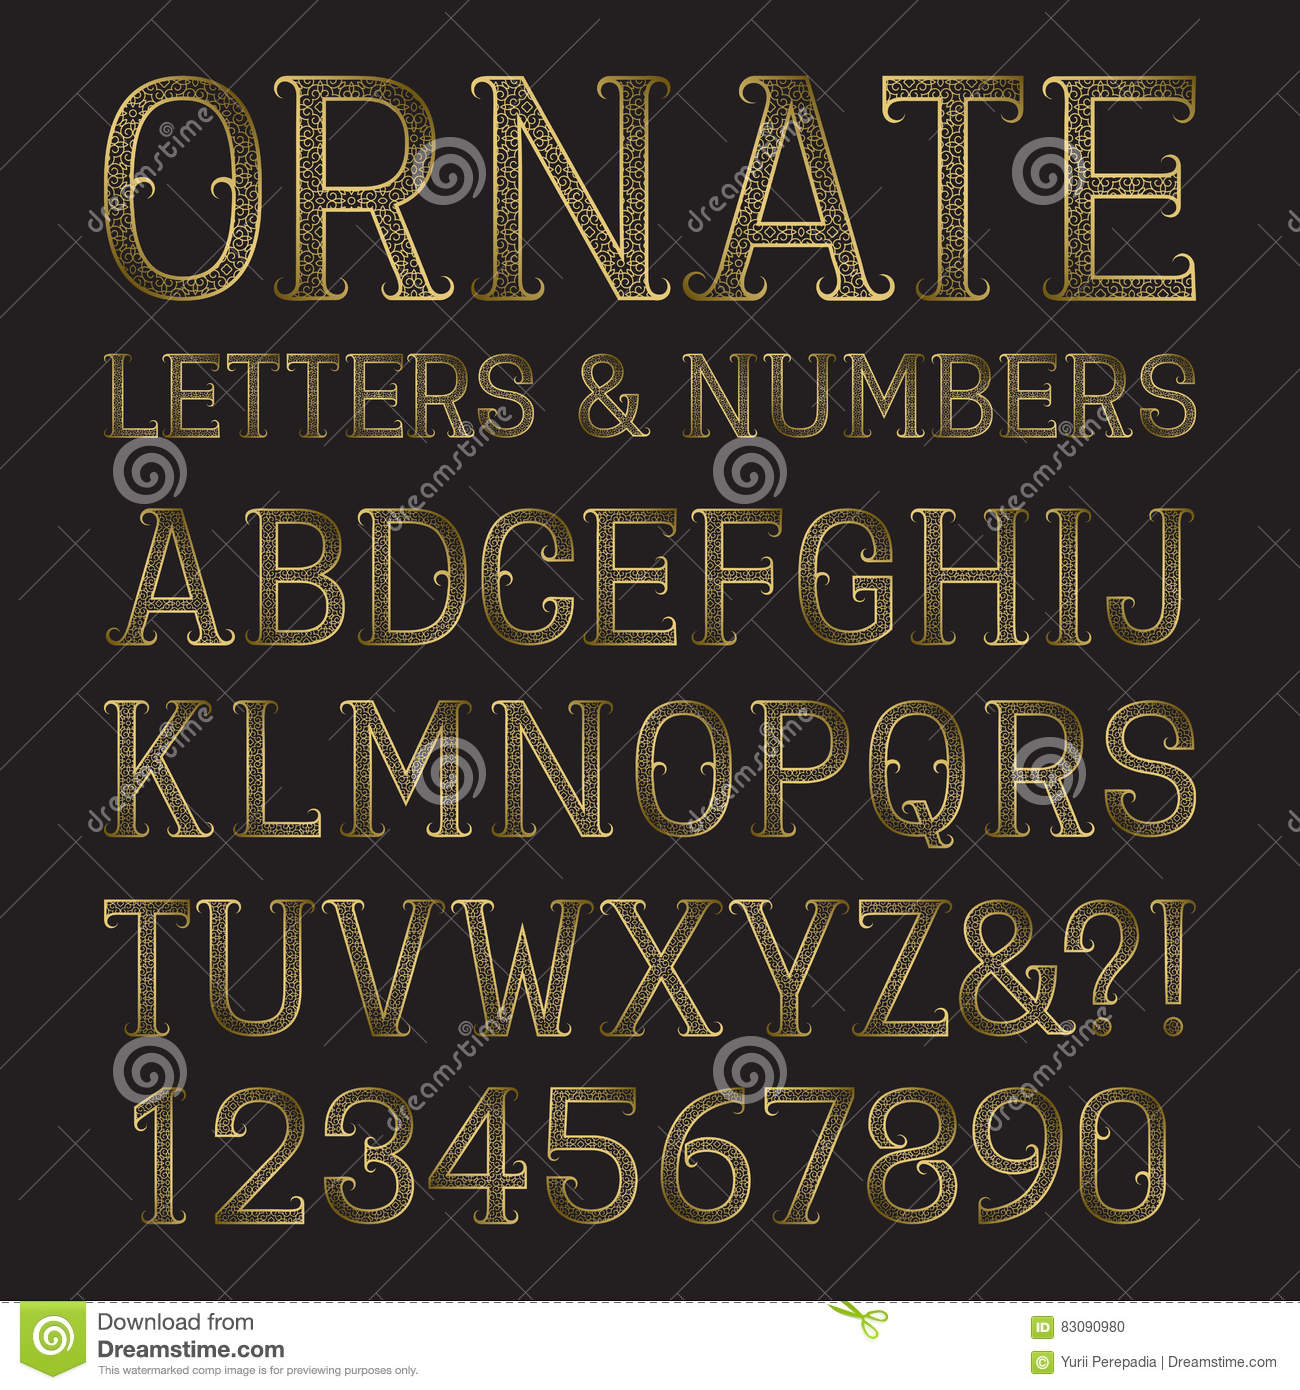 Golden ornate capital letters and numbers with tendrils. Decorative patterned vintage font. Isolated latin alphabet with figures.